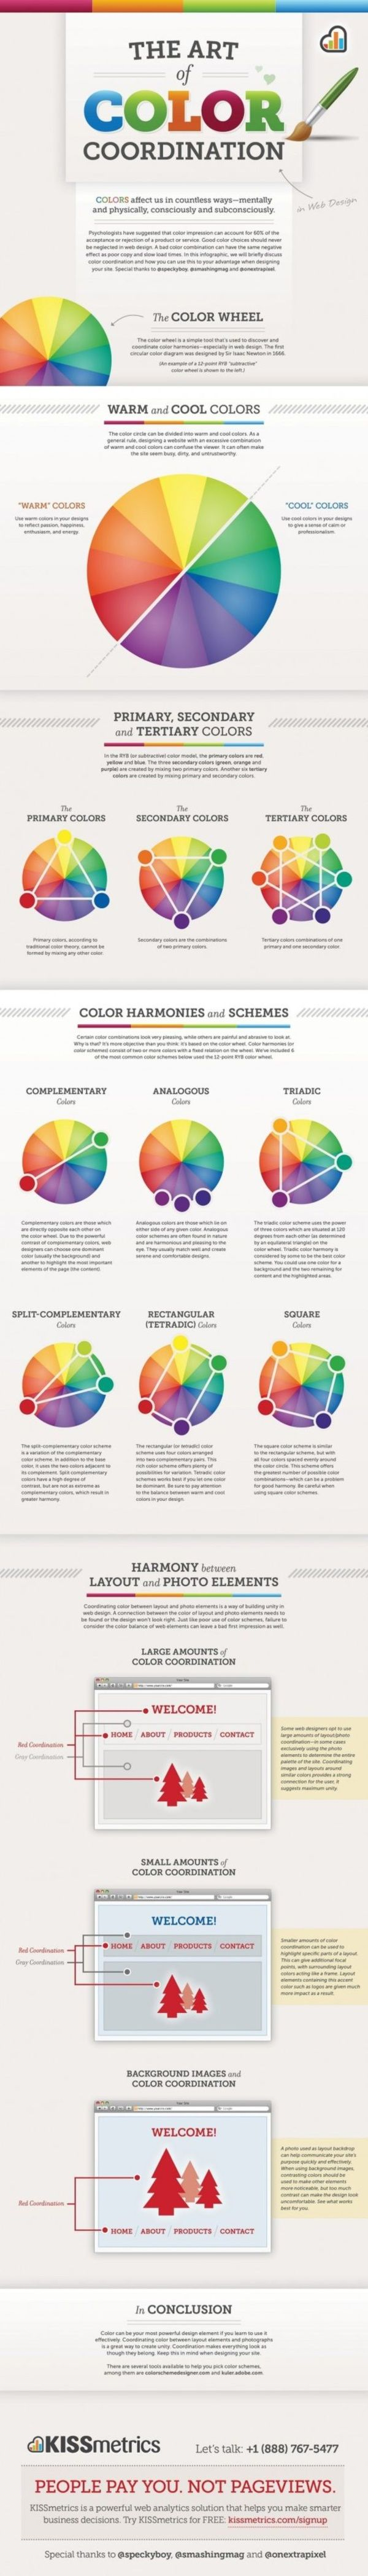 Online color mixer tool - 40 Practically Useful Color Mixing Charts